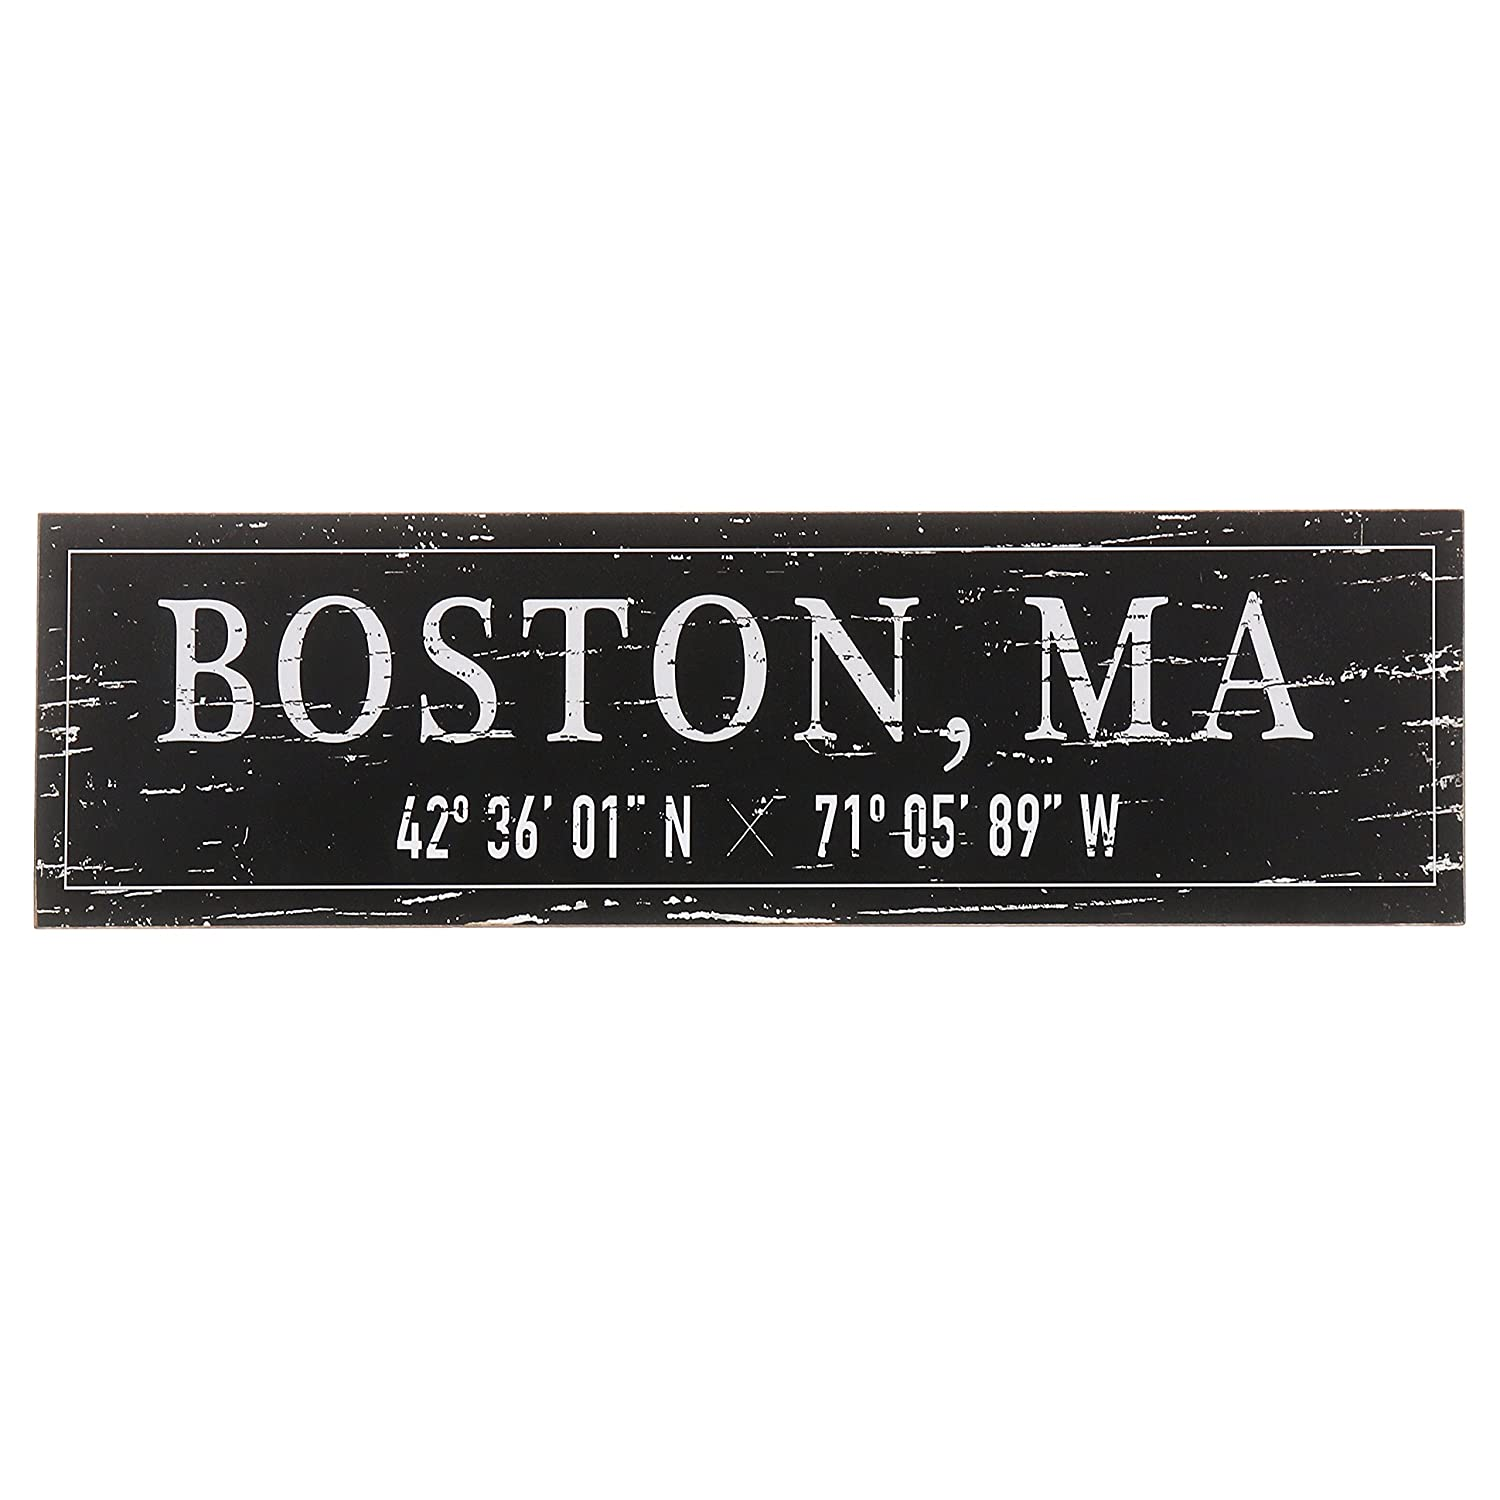 "Barnyard Designs Boston, MA City Sign Rustic Distressed Decorative Wood Wall Decor 17"" x 5"""